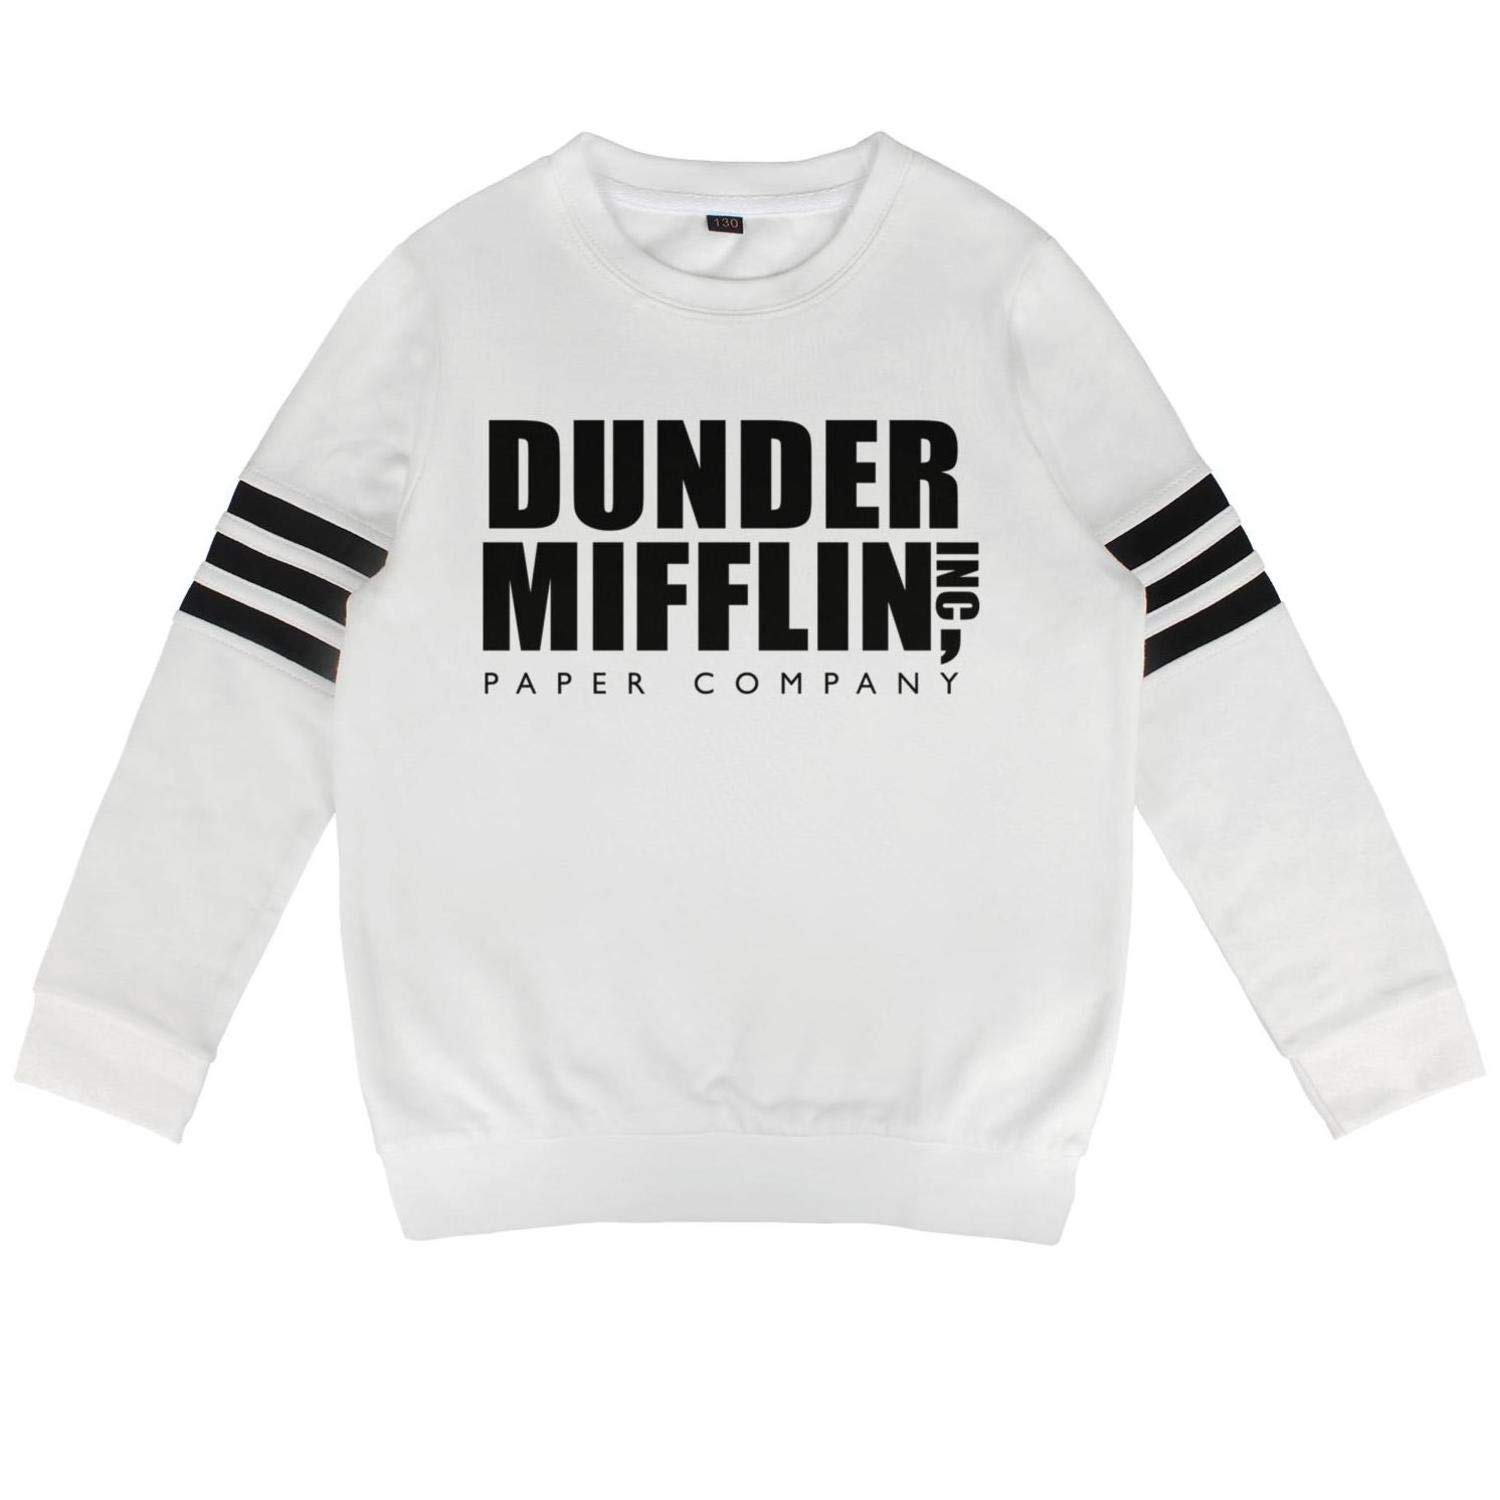 BenS Oscar Hoodies for Boys Girls Dunder Mifflin Paper Lnc Cool Trendy Cotton Long Sleeve Sweatshirt for Kids